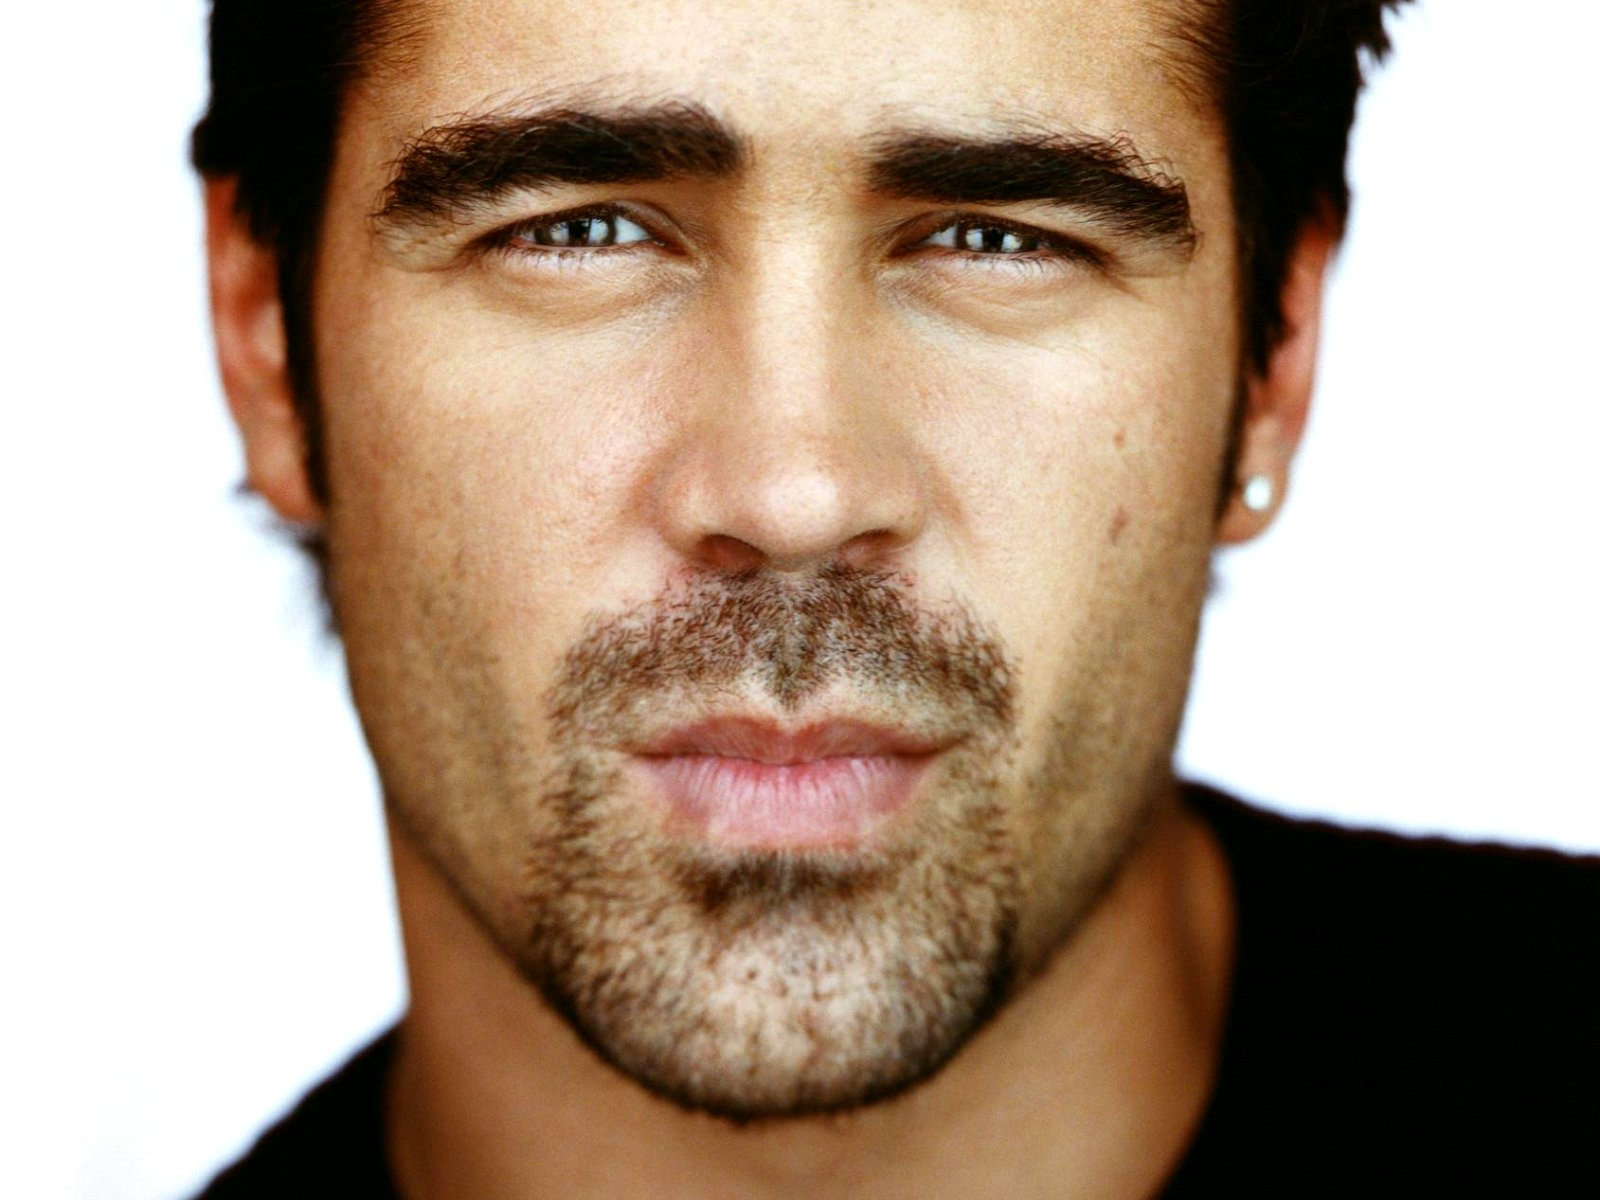 Salman Hd Wallpaper Download Colin Farrell Wallpapers High Resolution And Quality Download